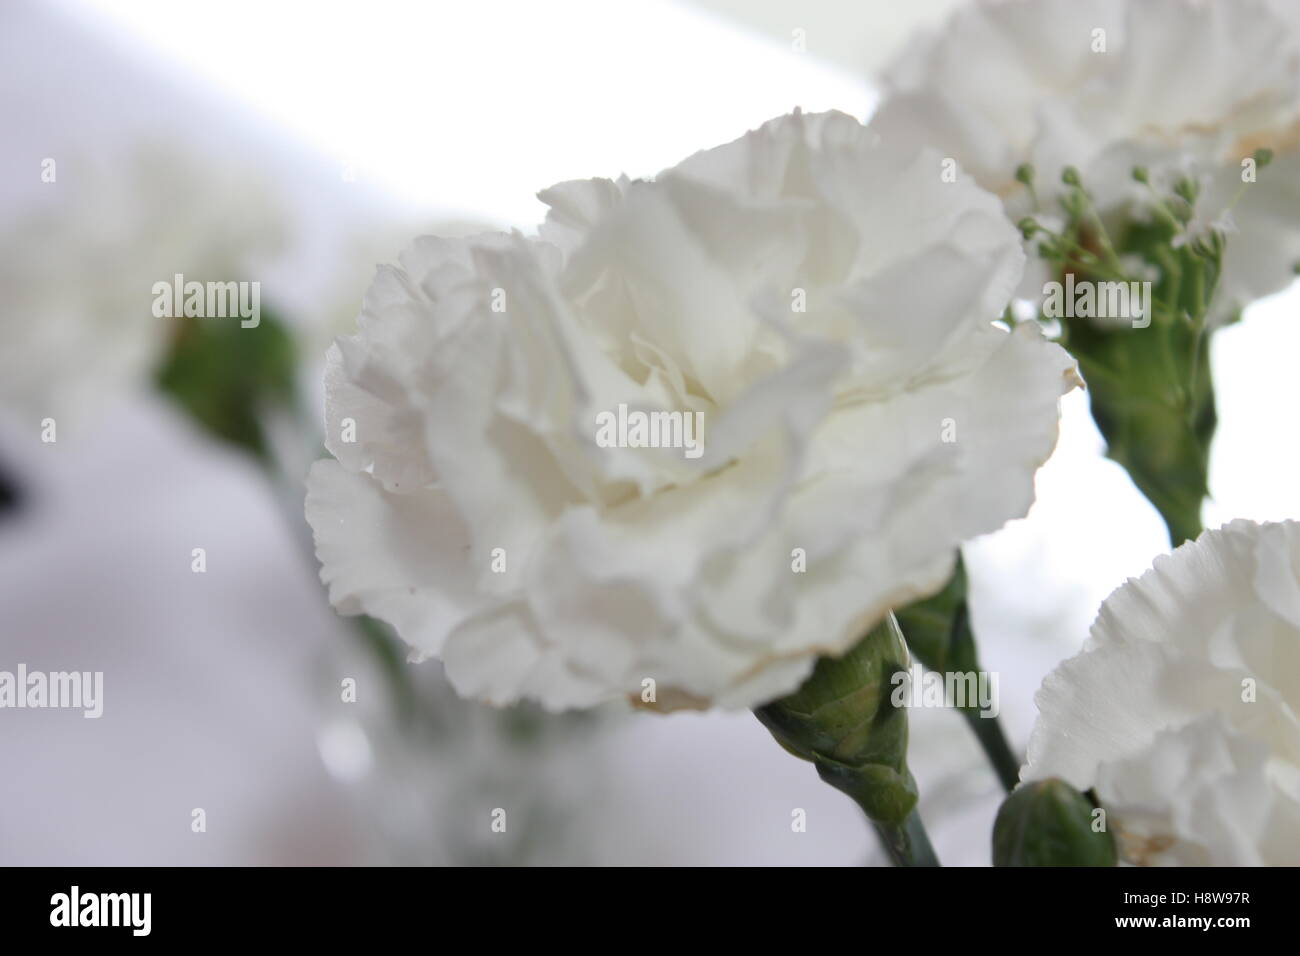 White Carnation Flower Stock Photos White Carnation Flower Stock